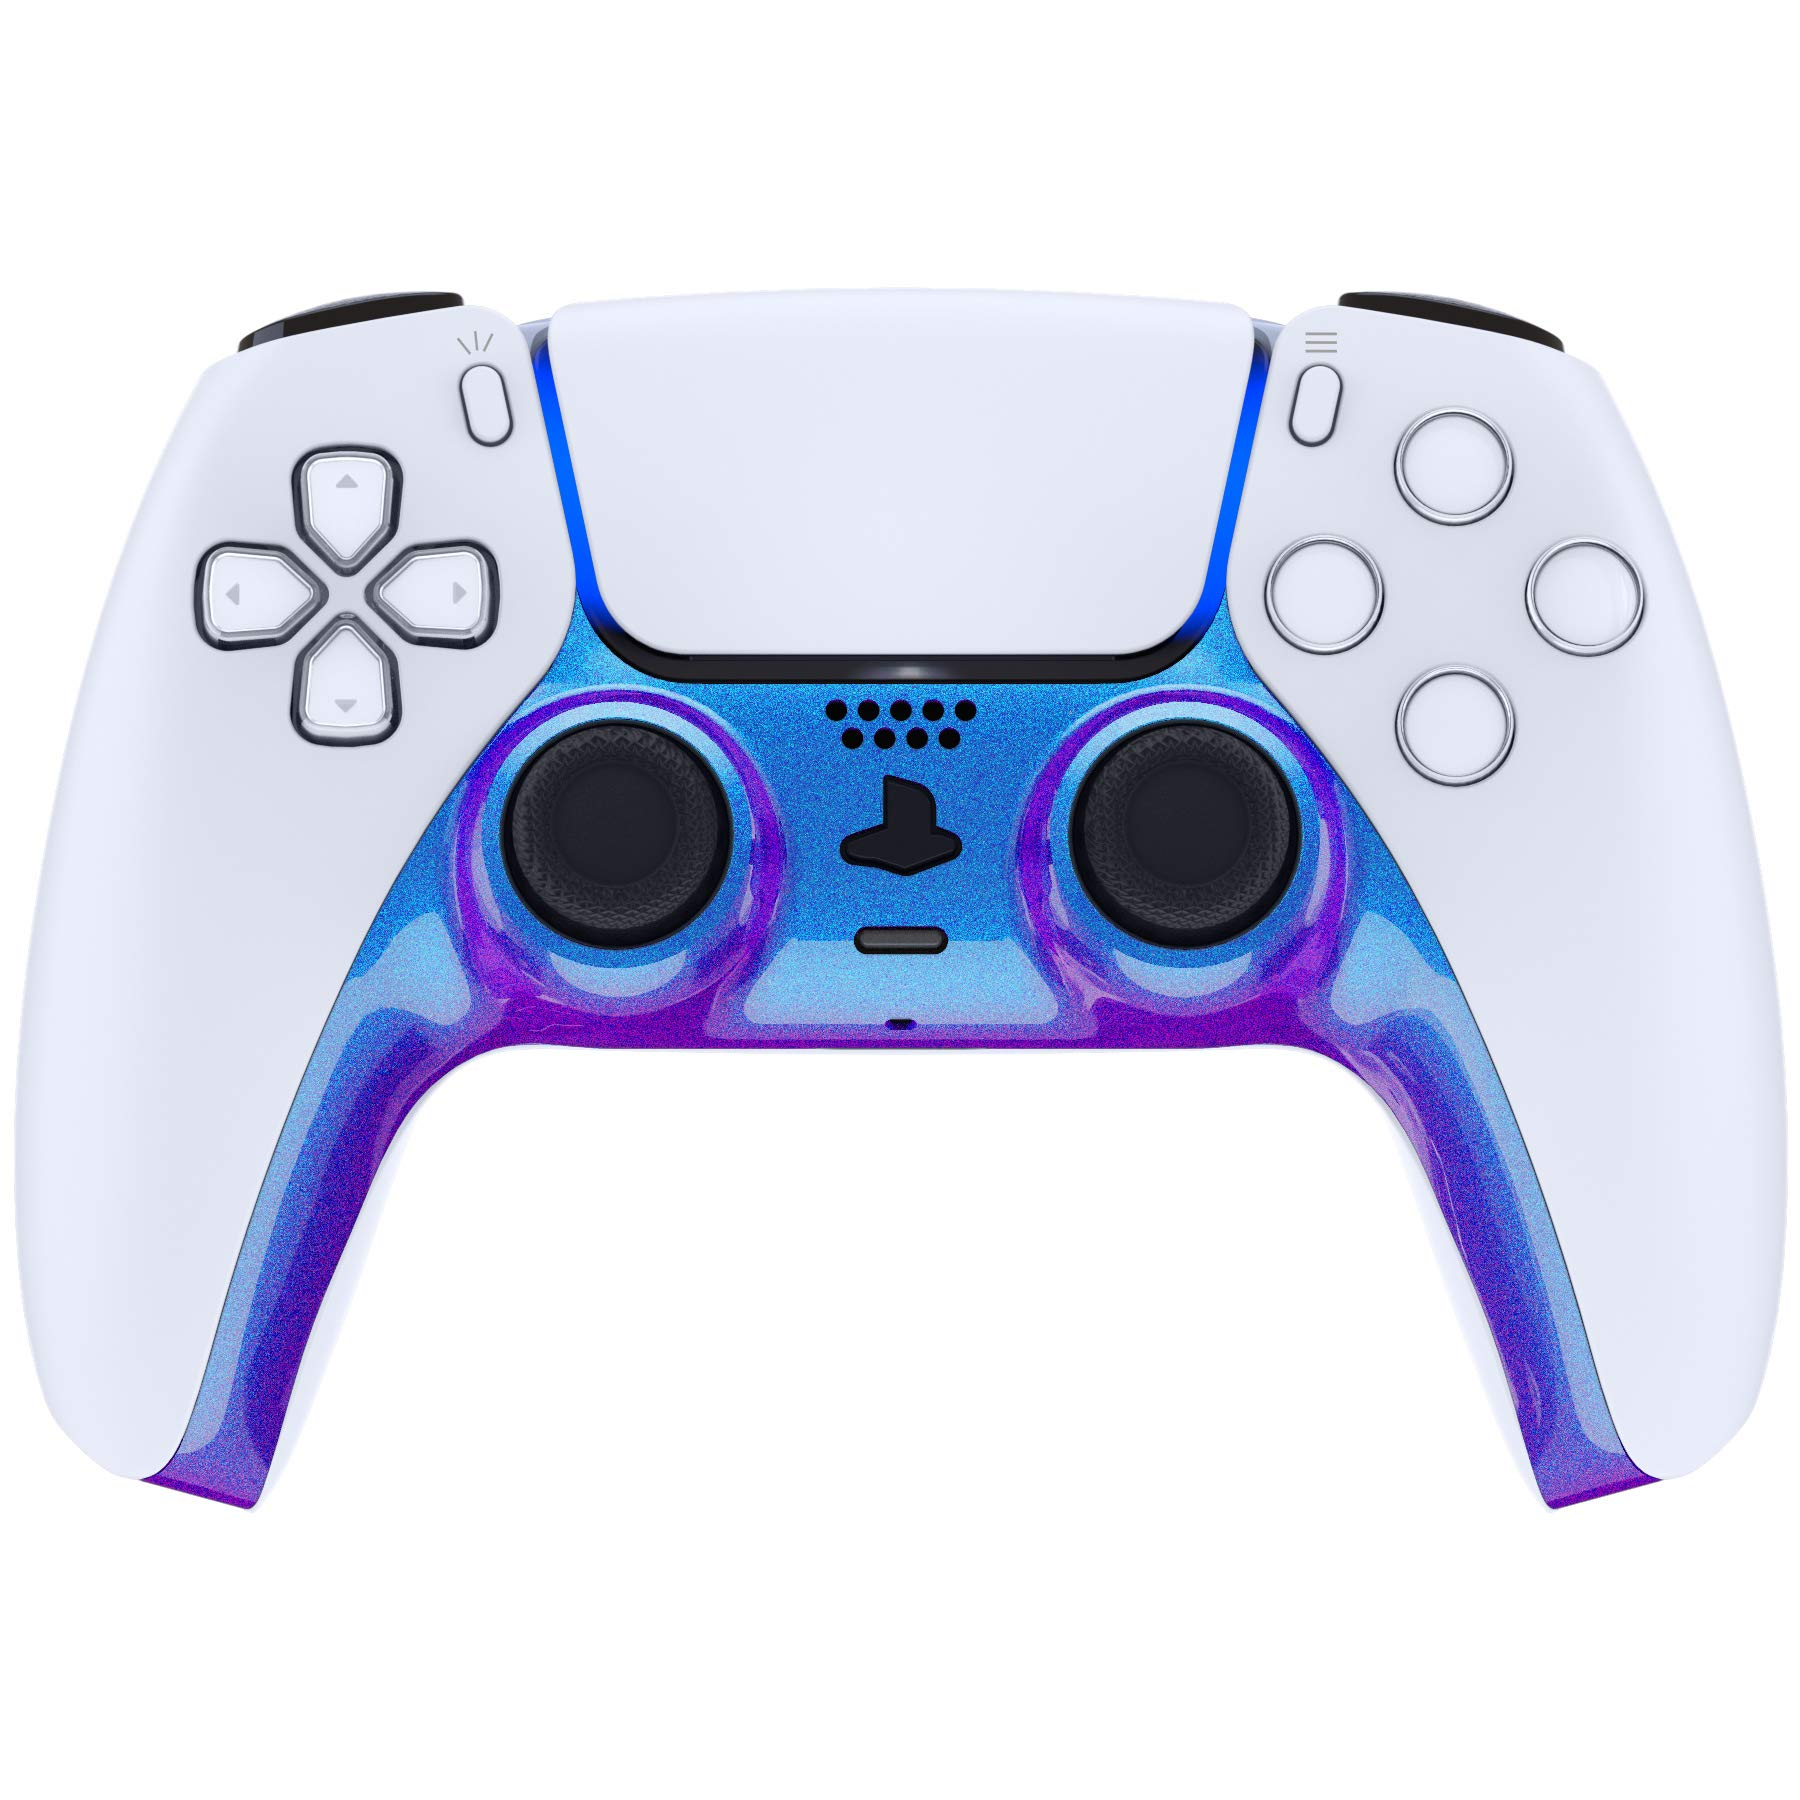 eXtremeRate Chameleon Purple Blue Decorative Trim Shell for DualSense 5 Controller, DIY Replacement Clip Shell for PS5 Controller, Custom Plates Cover for Playstation 5 Controller w/Accent Rings